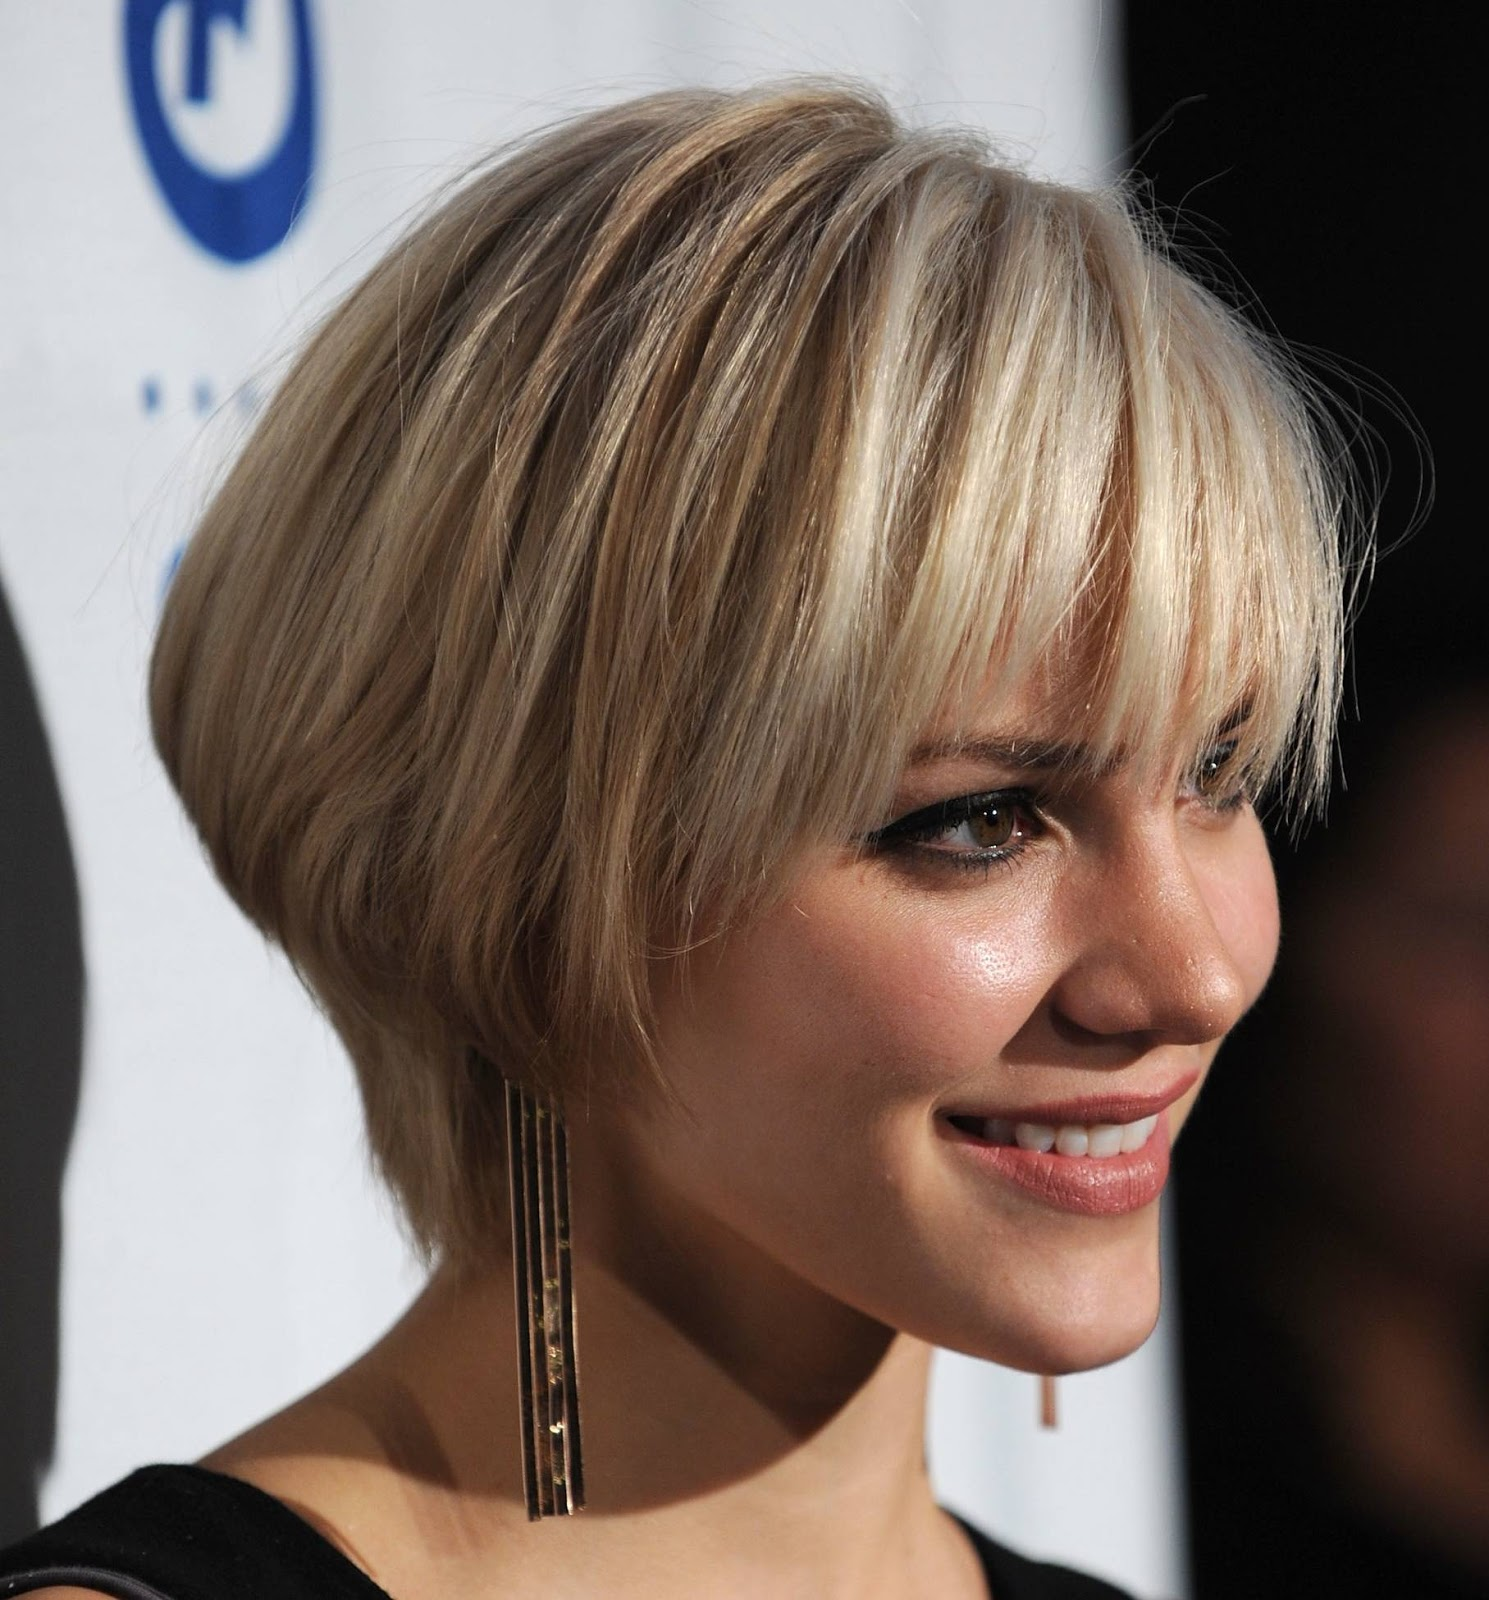 Hairstyles for Short Bob Haircuts